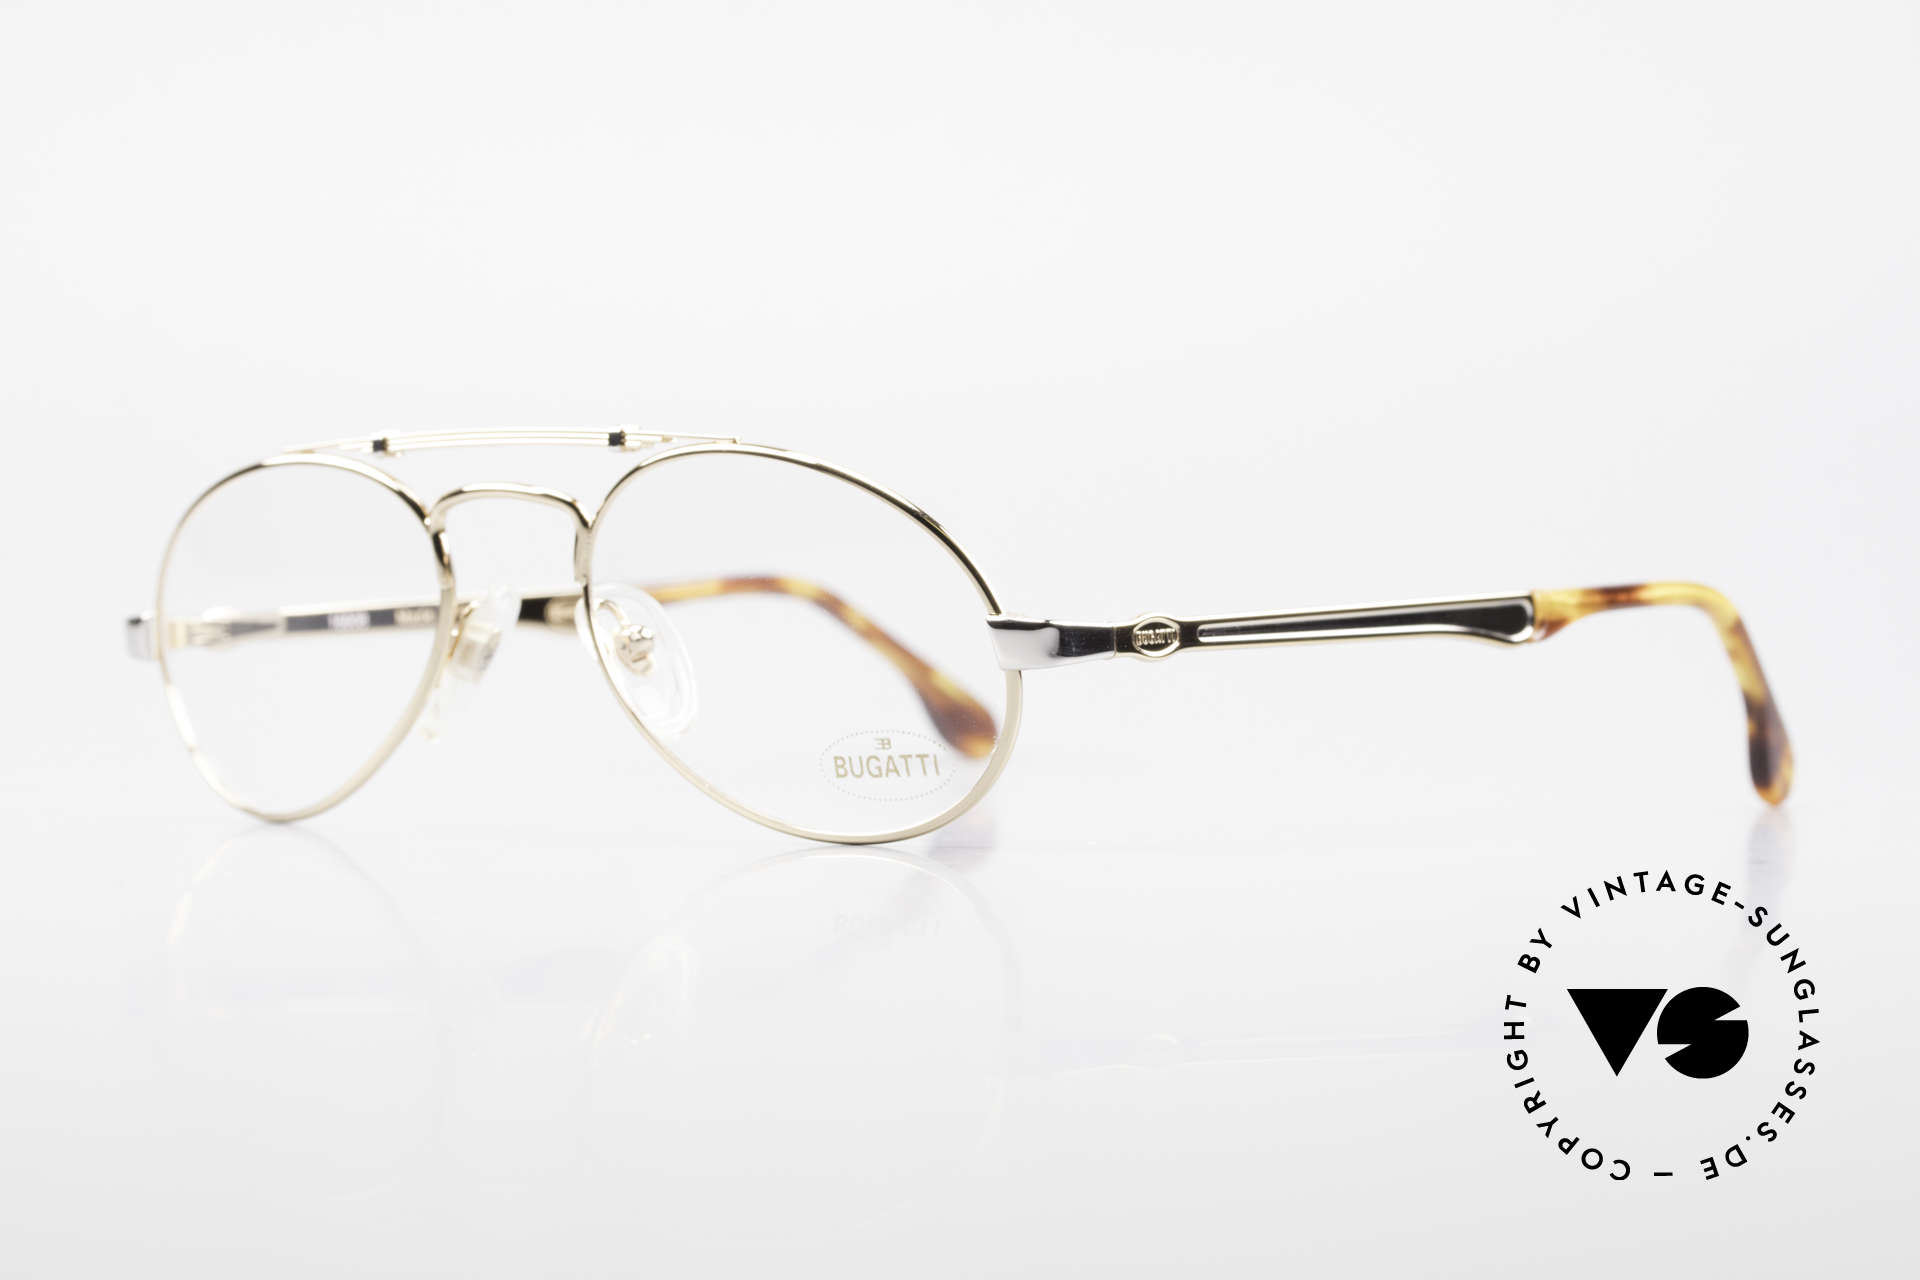 Bugatti 16908 Gold Plated 80's Eyeglasses, flexible spring temples & top-notch craftmanship, Made for Men